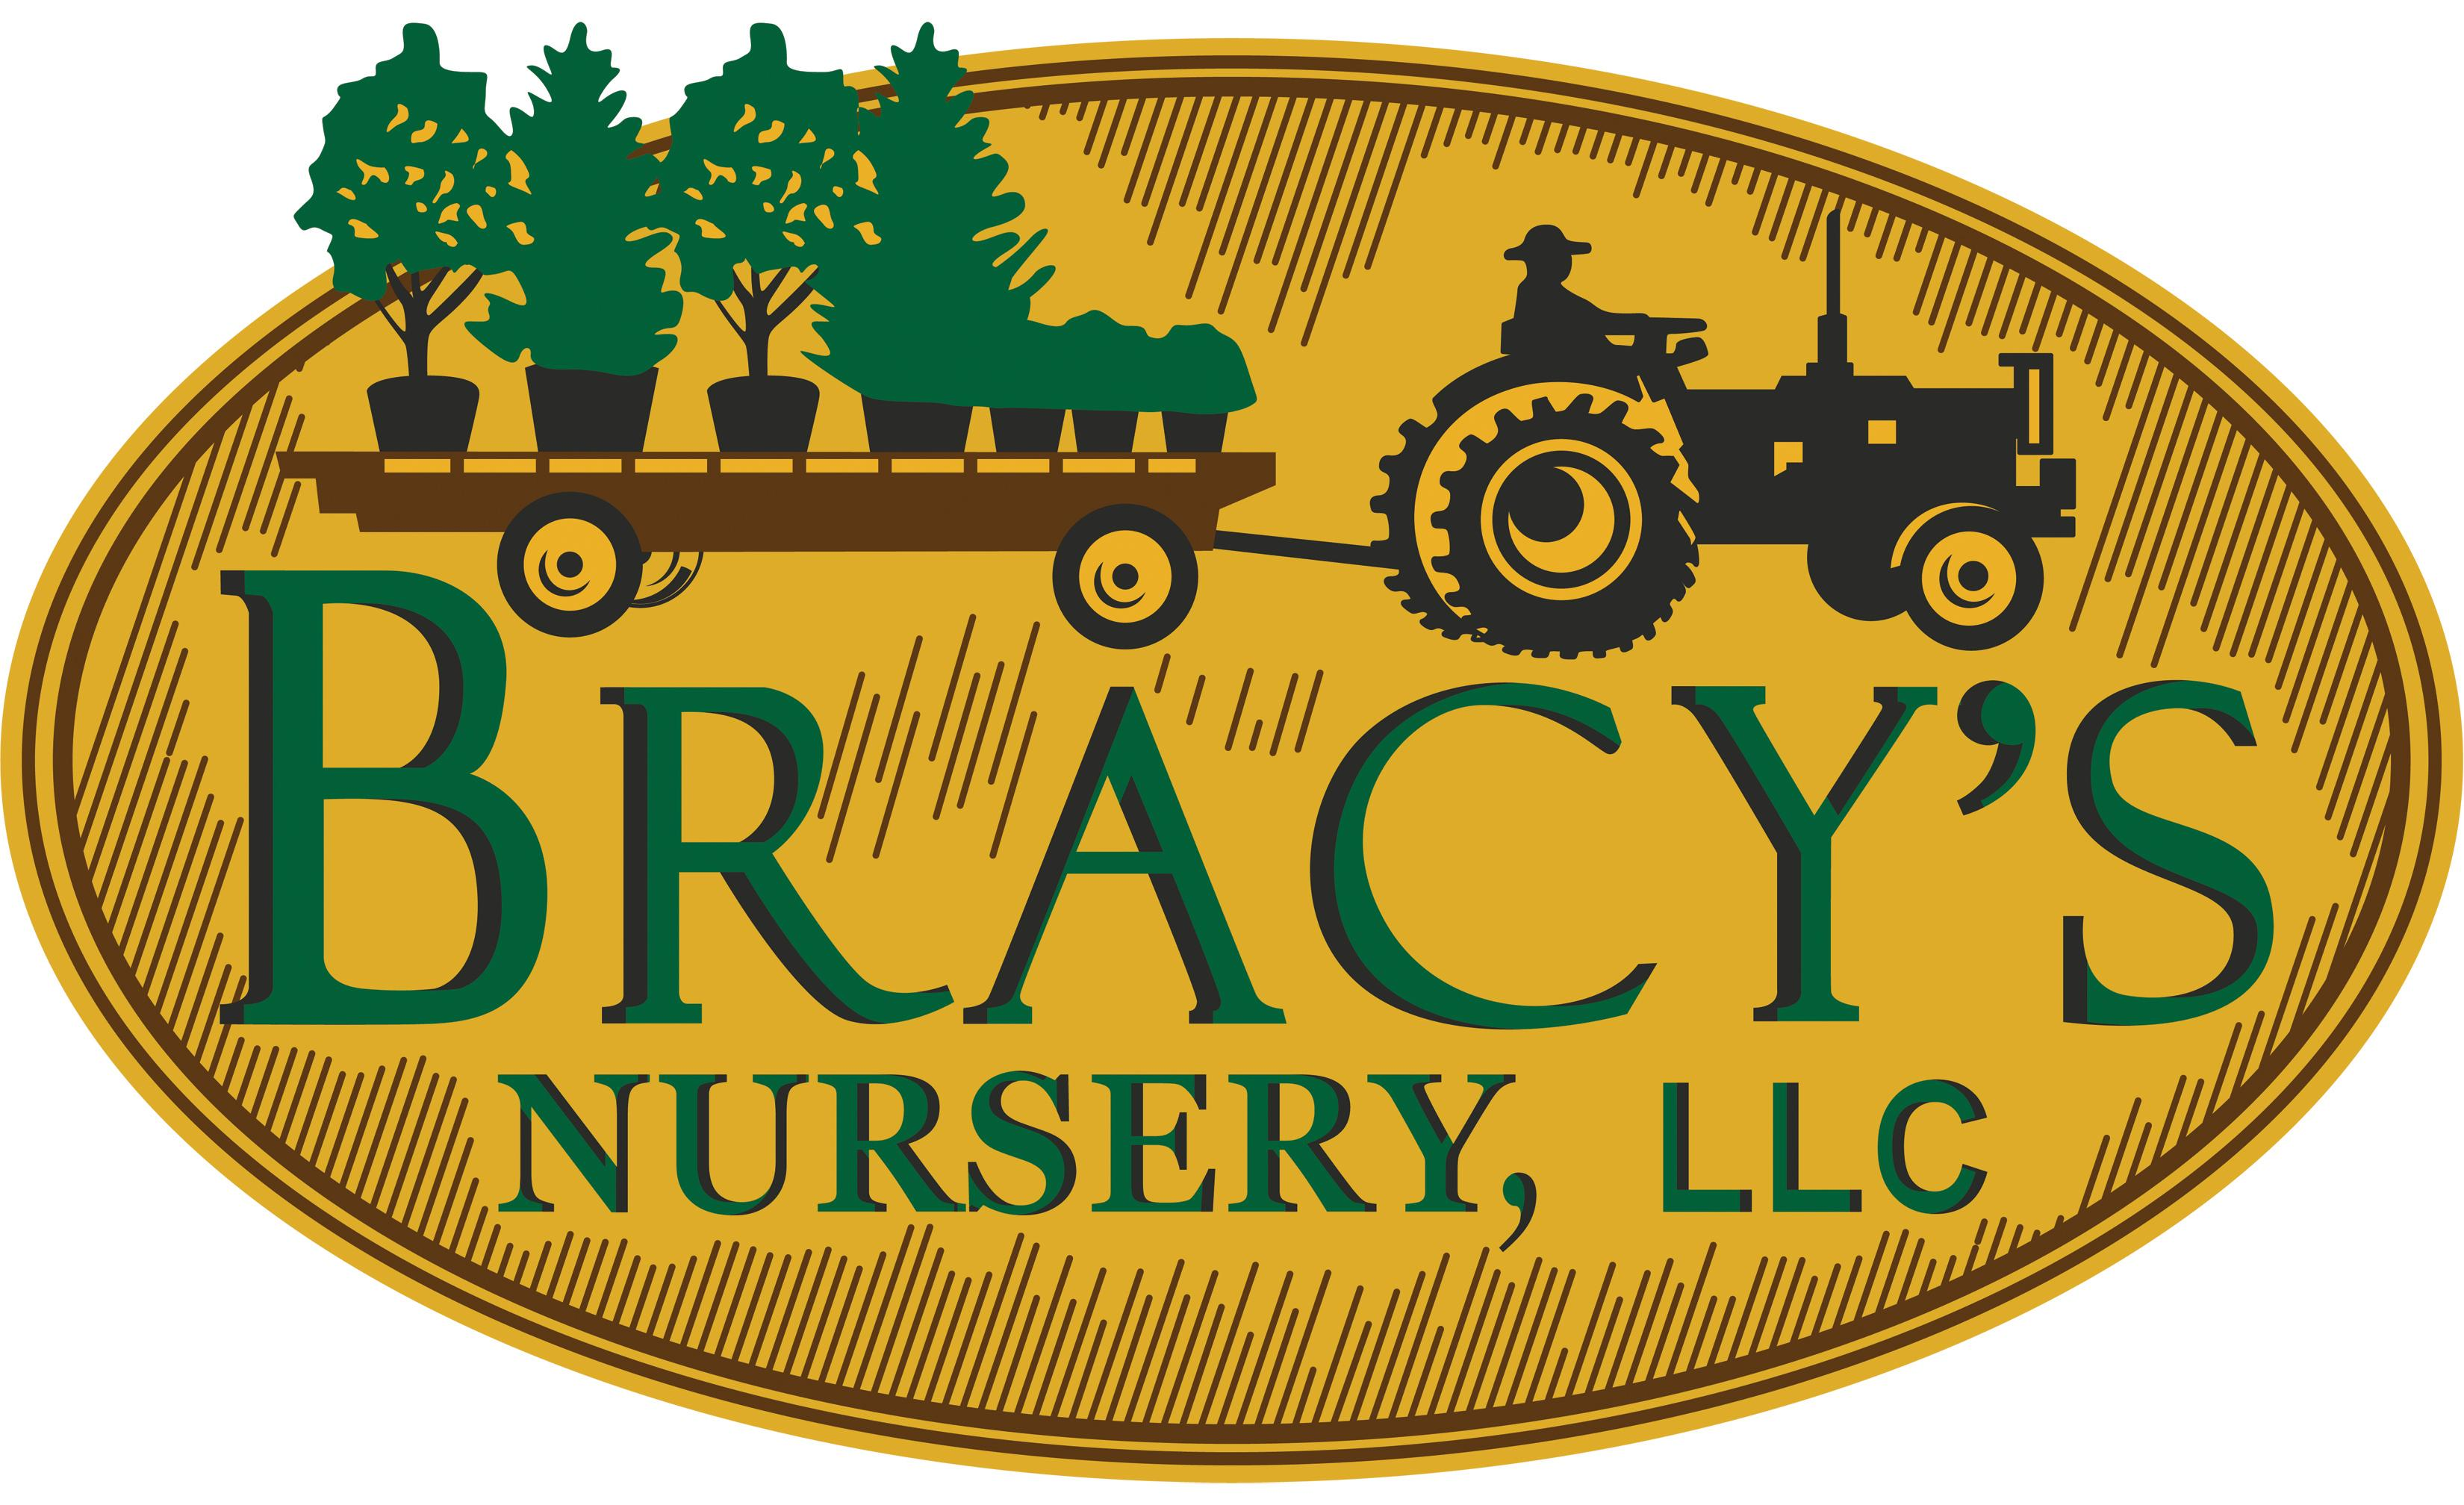 Bracy's Nursery, LLC